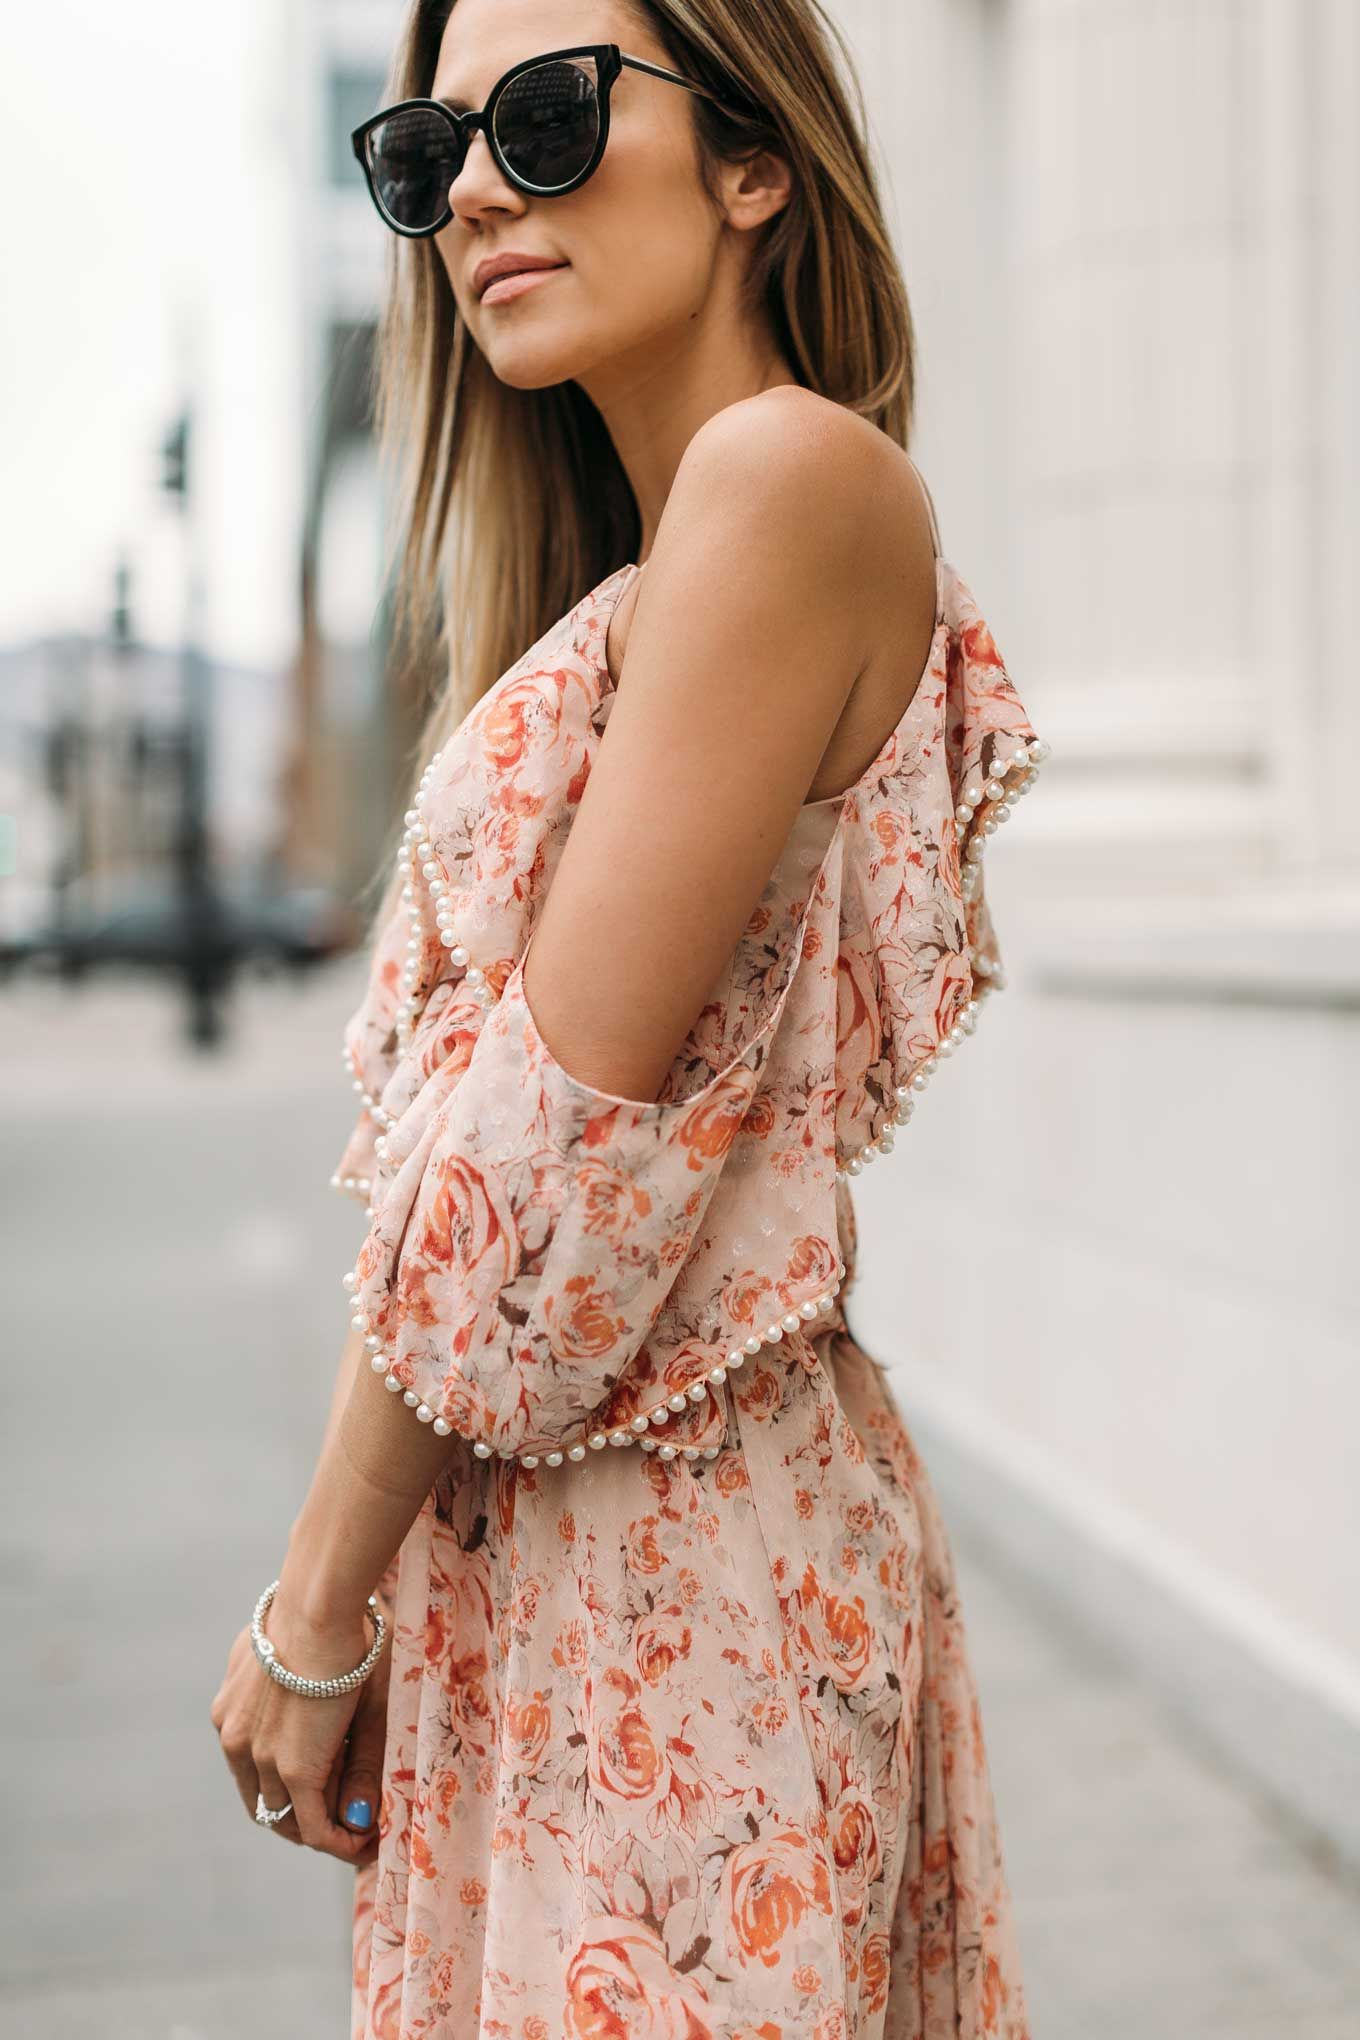 Open shoulder floral dress with pearl detailing. The perfect dress selections for Easter on the blog.